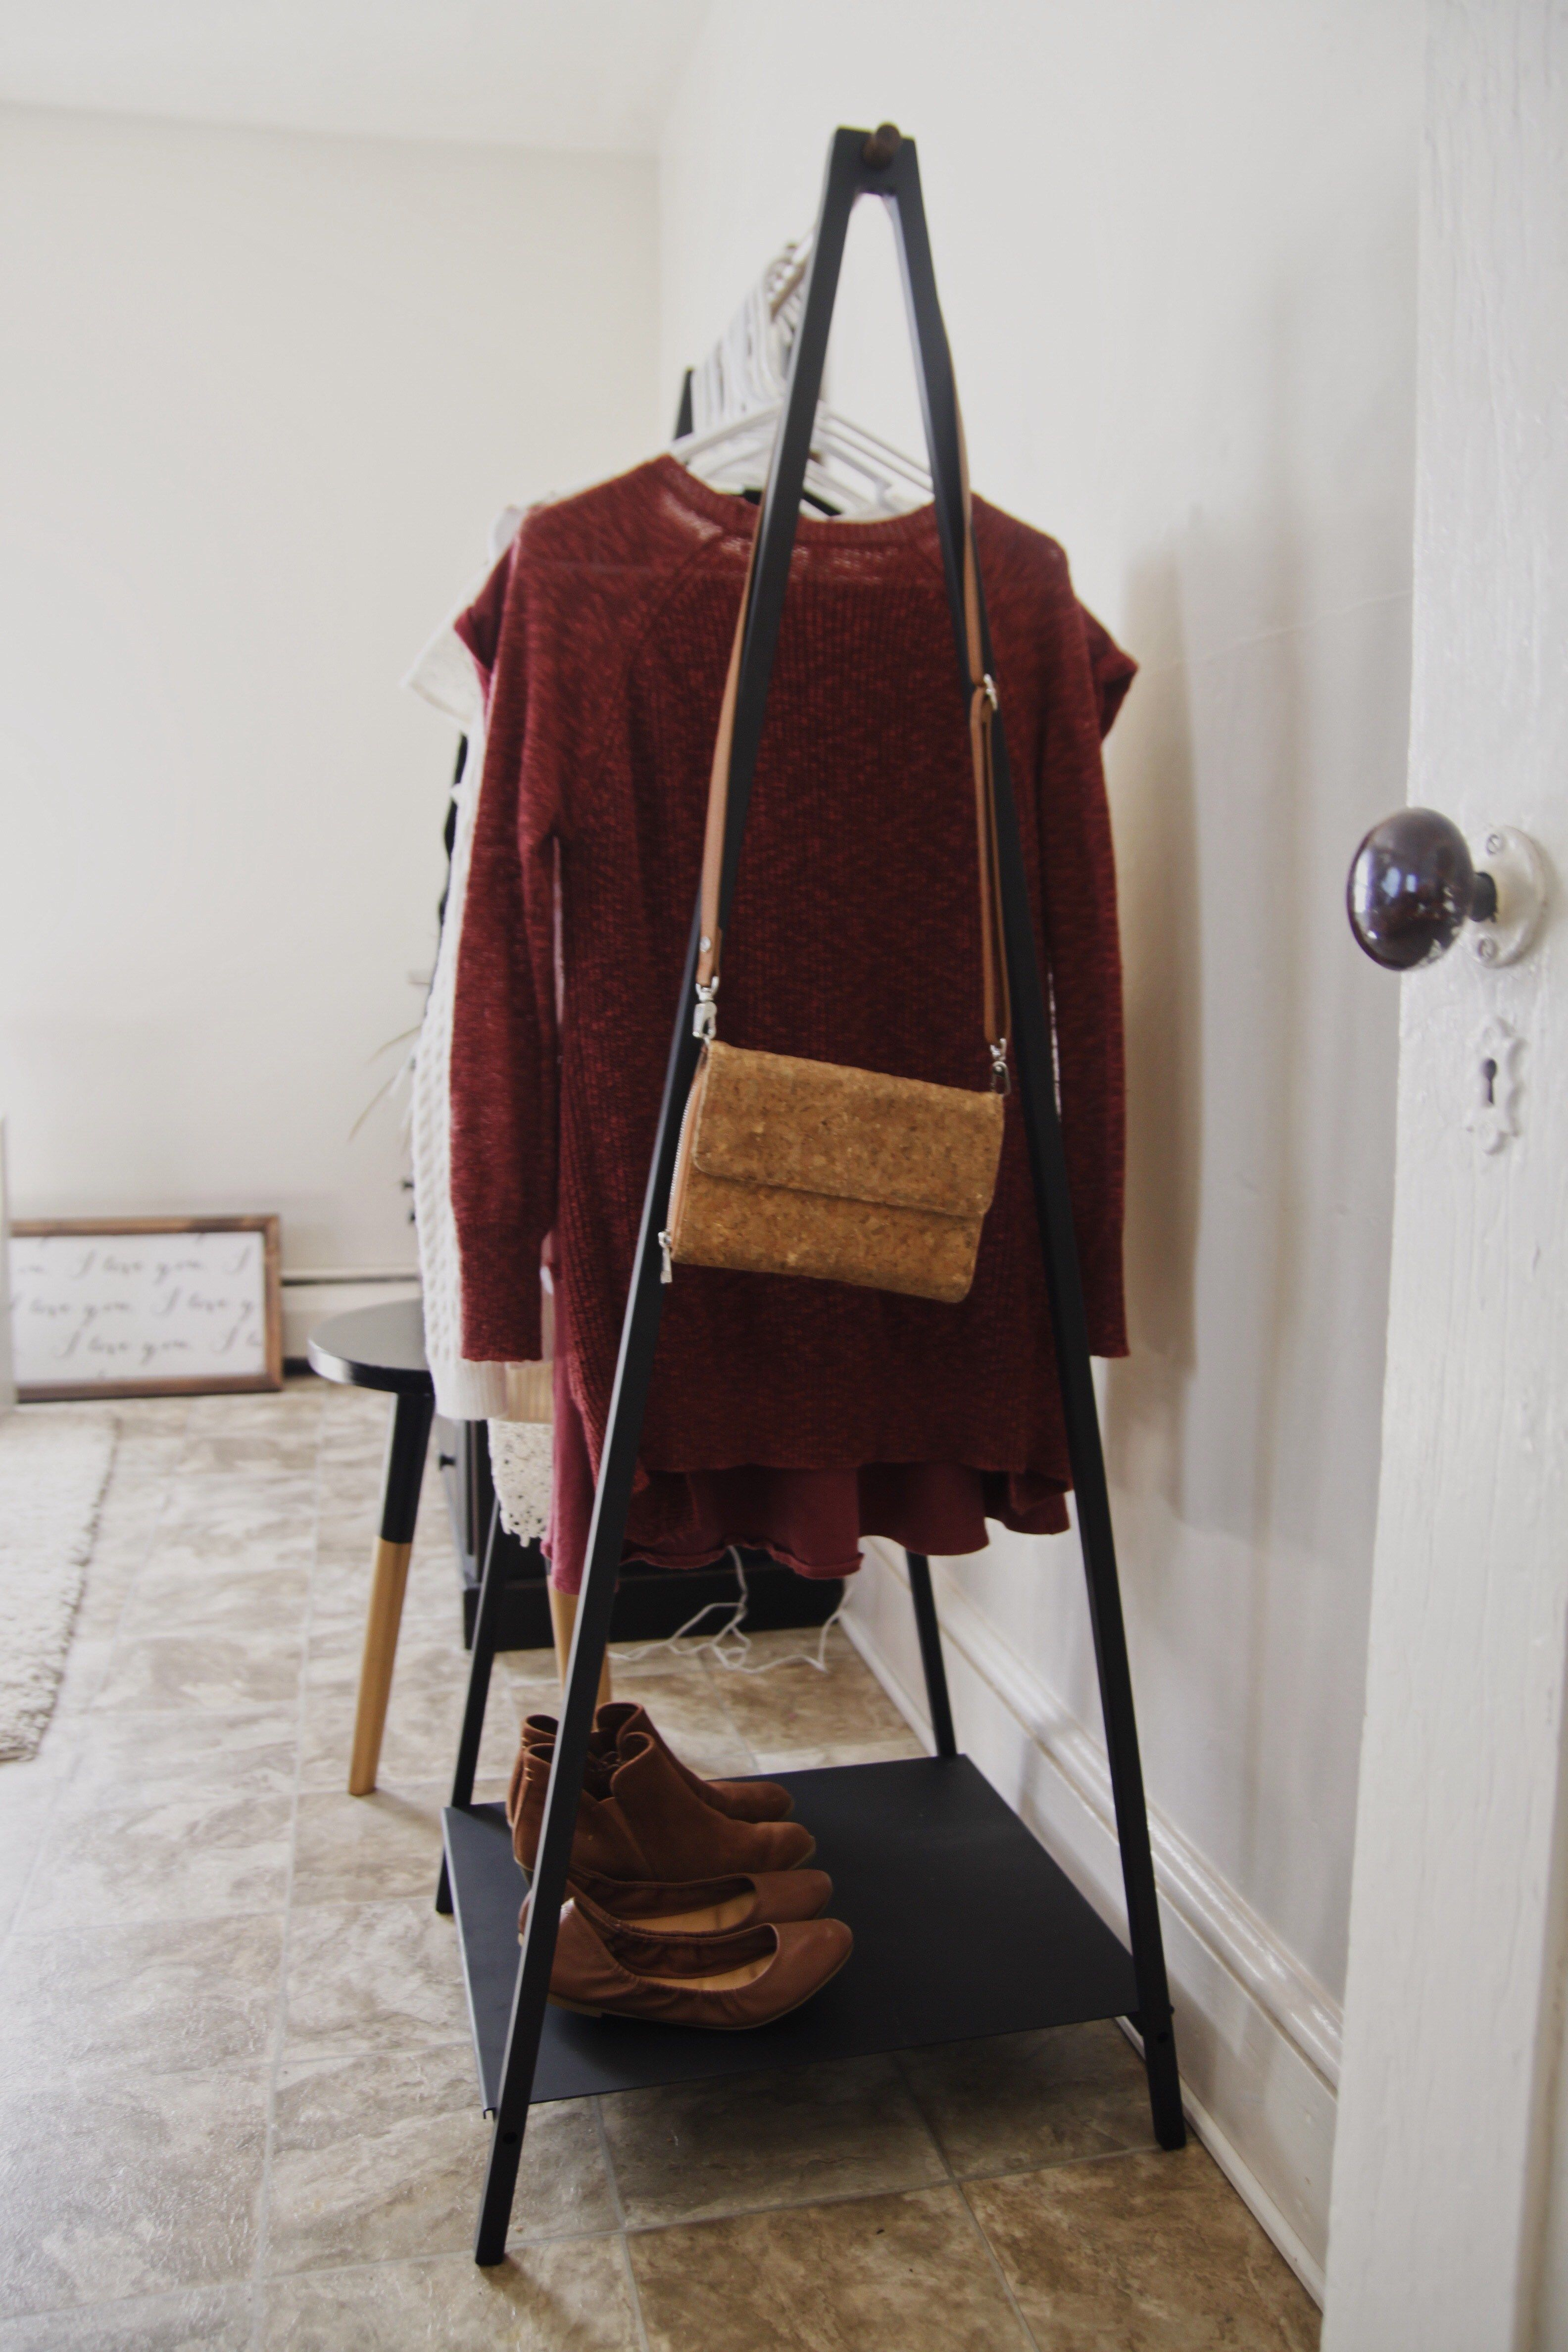 Modern Clothes Rack (Minimalist)  The Amish Next Door